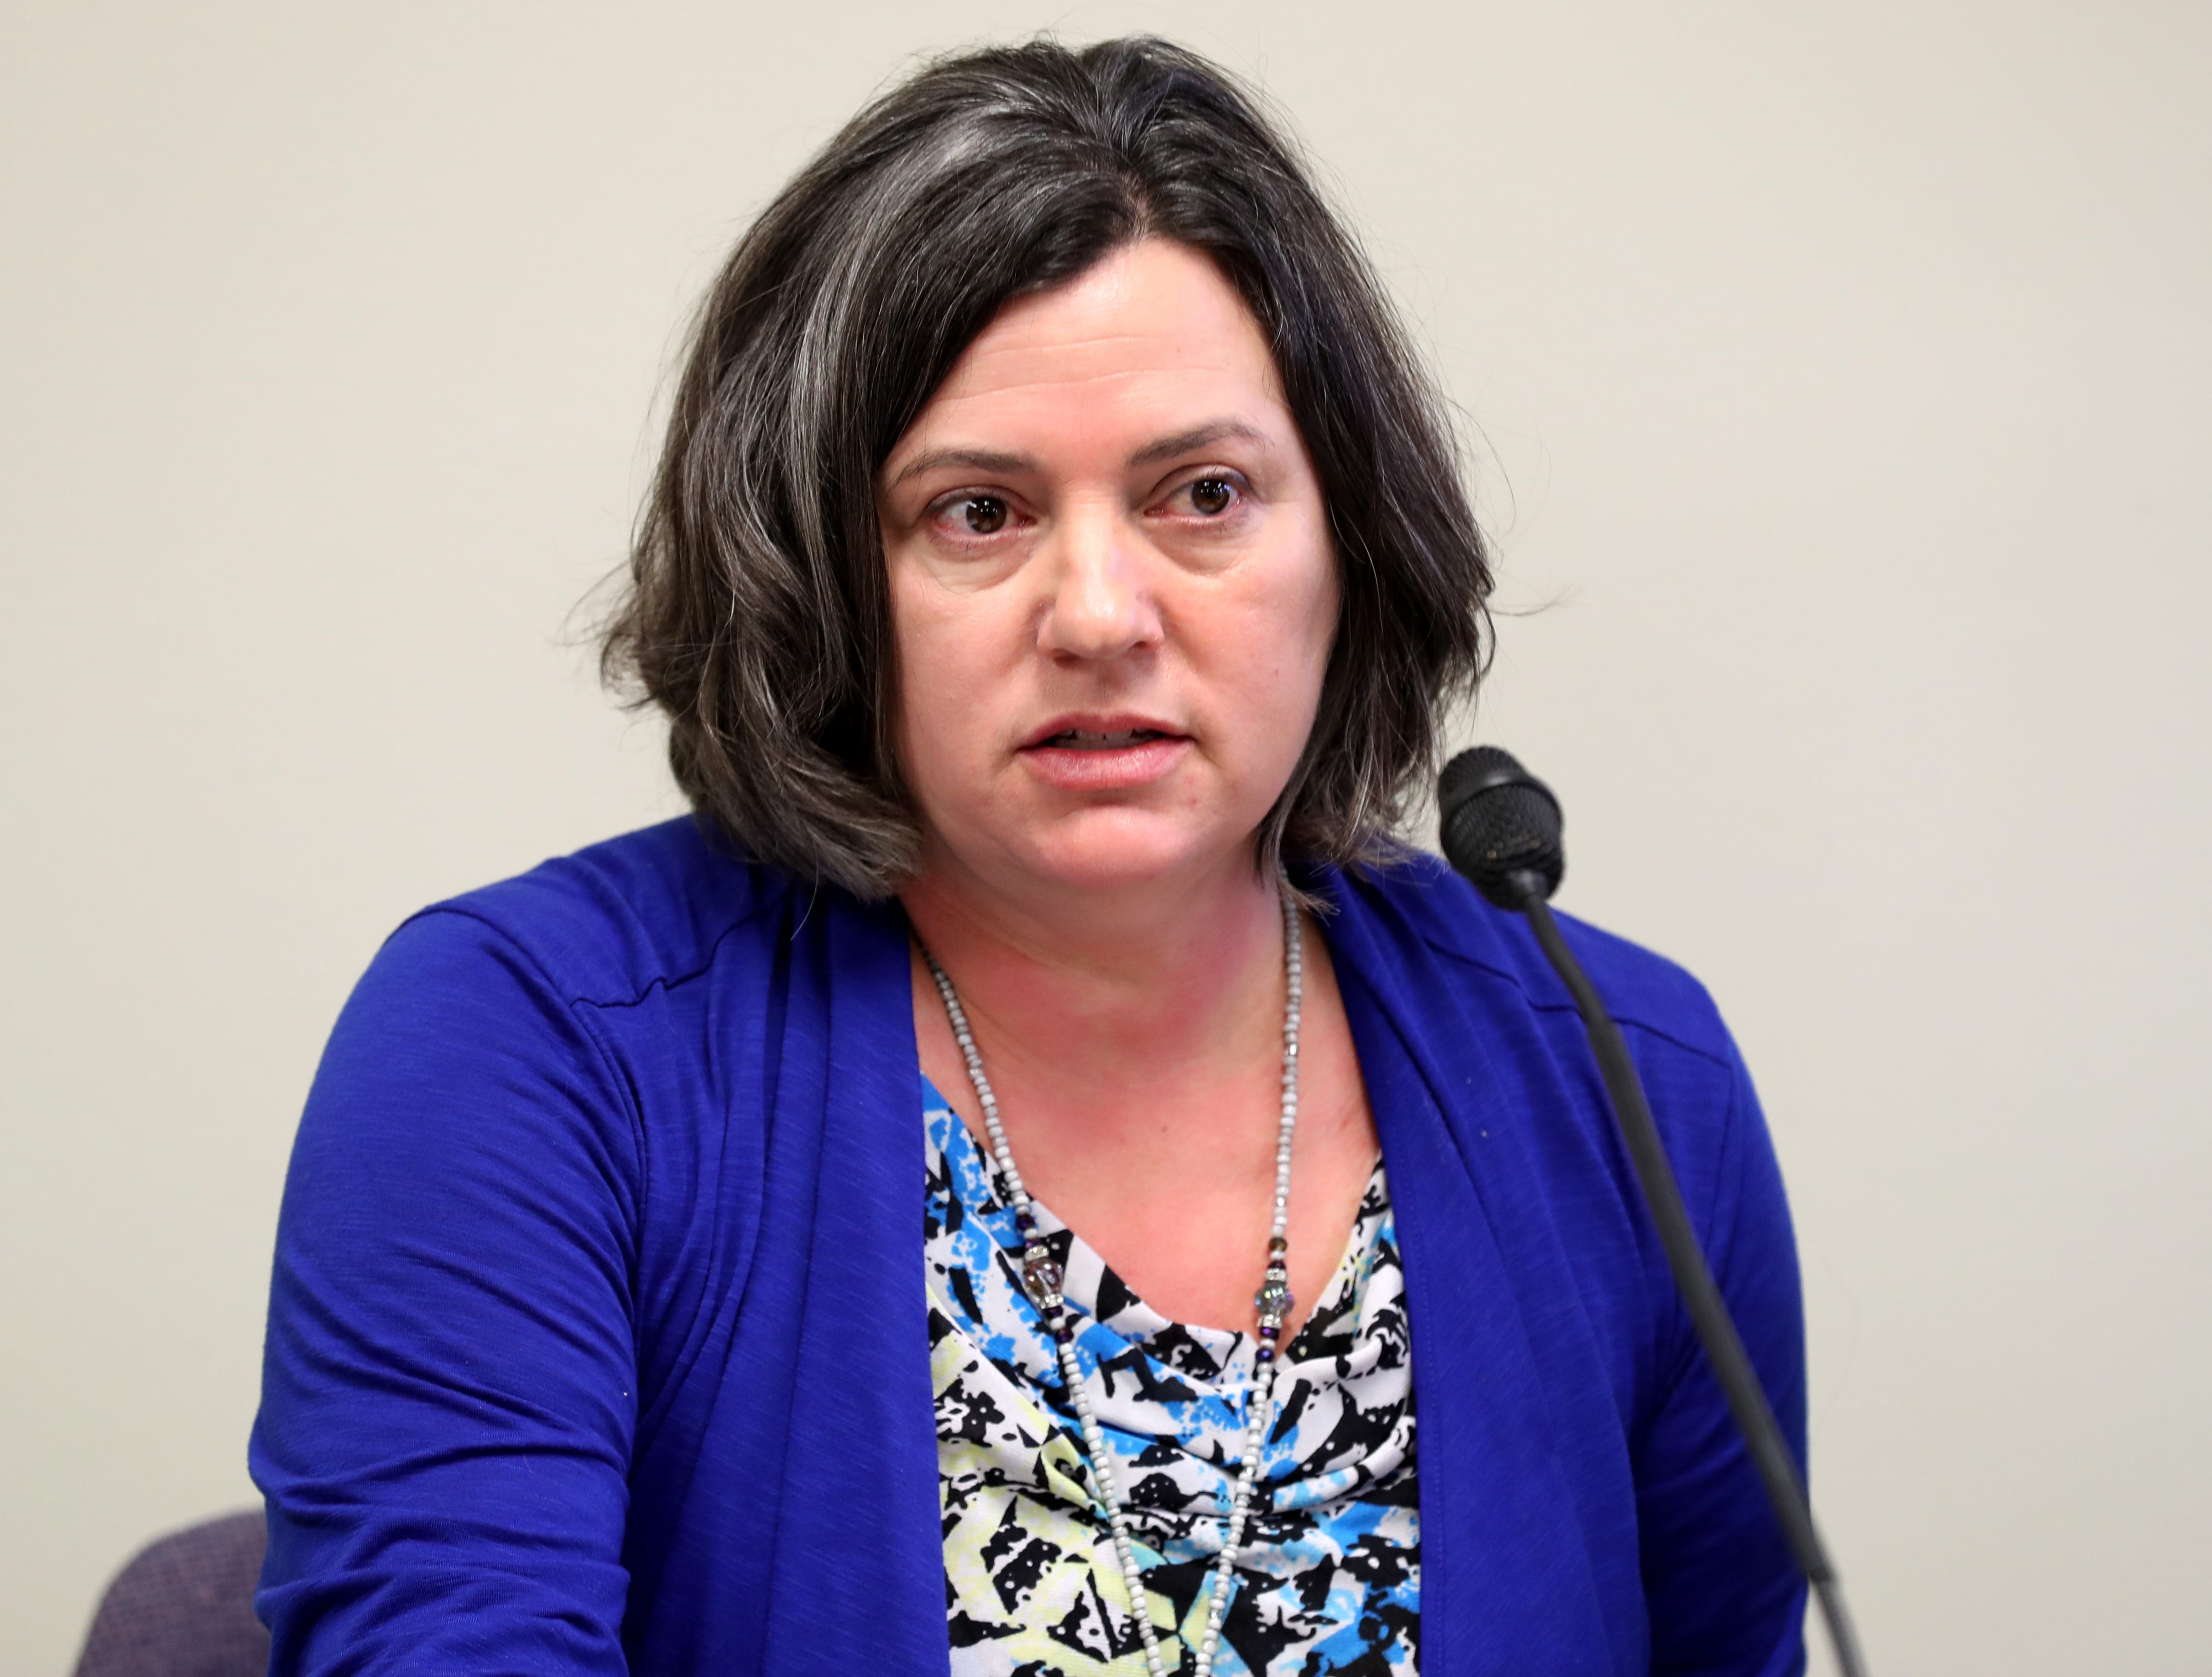 Catholic Diocese of Green Bay Chancellor Tammy Basten discusses discusses the release of the names on Thursday of 46 priests confirmed to hve abused minors at the Diocese of Green Bay offices in Allouez.